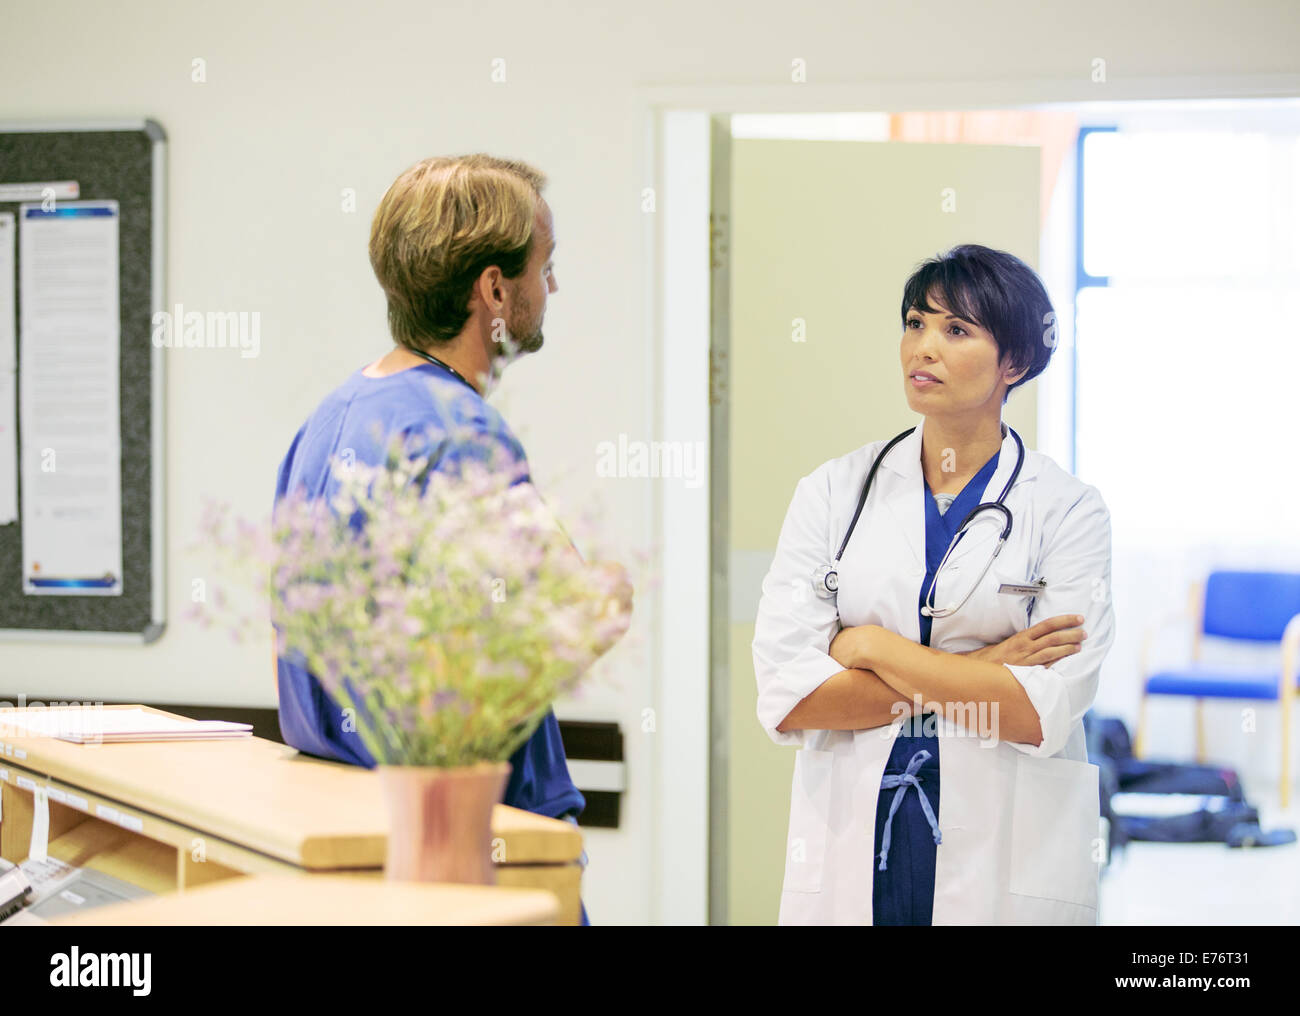 Doctor and nurse talking in hospital - Stock Image